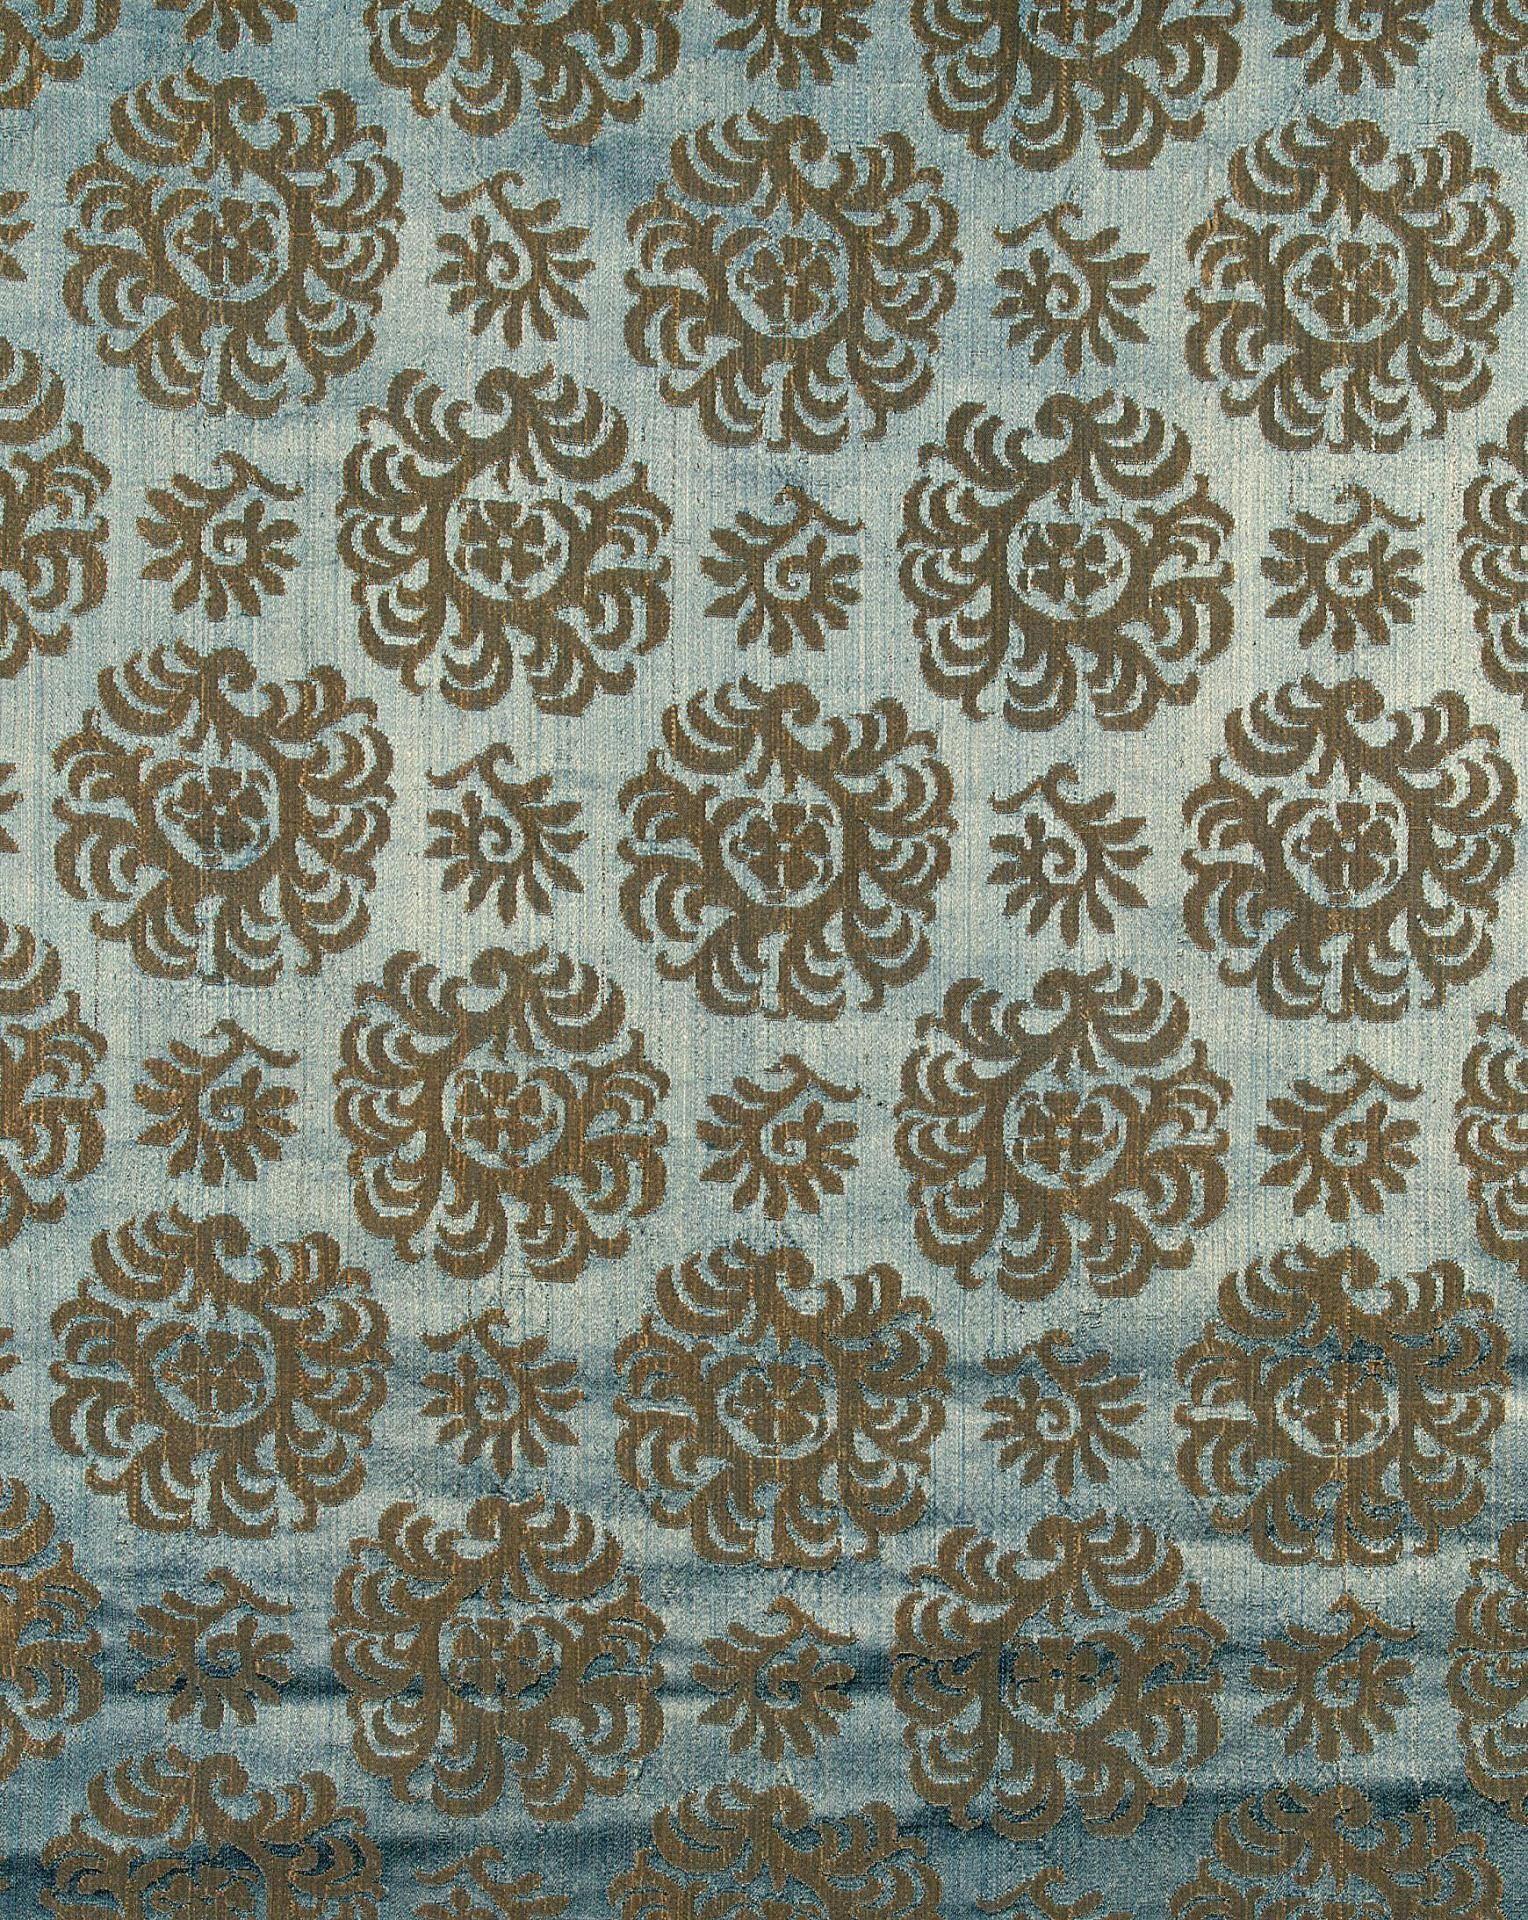 d953a12cb42 Title  Blue Fabric with Light Floral Pattern Place of creation  Italy Date   Late 15th - early 17th century Material  silk and damask Inventory Number   Т- ...